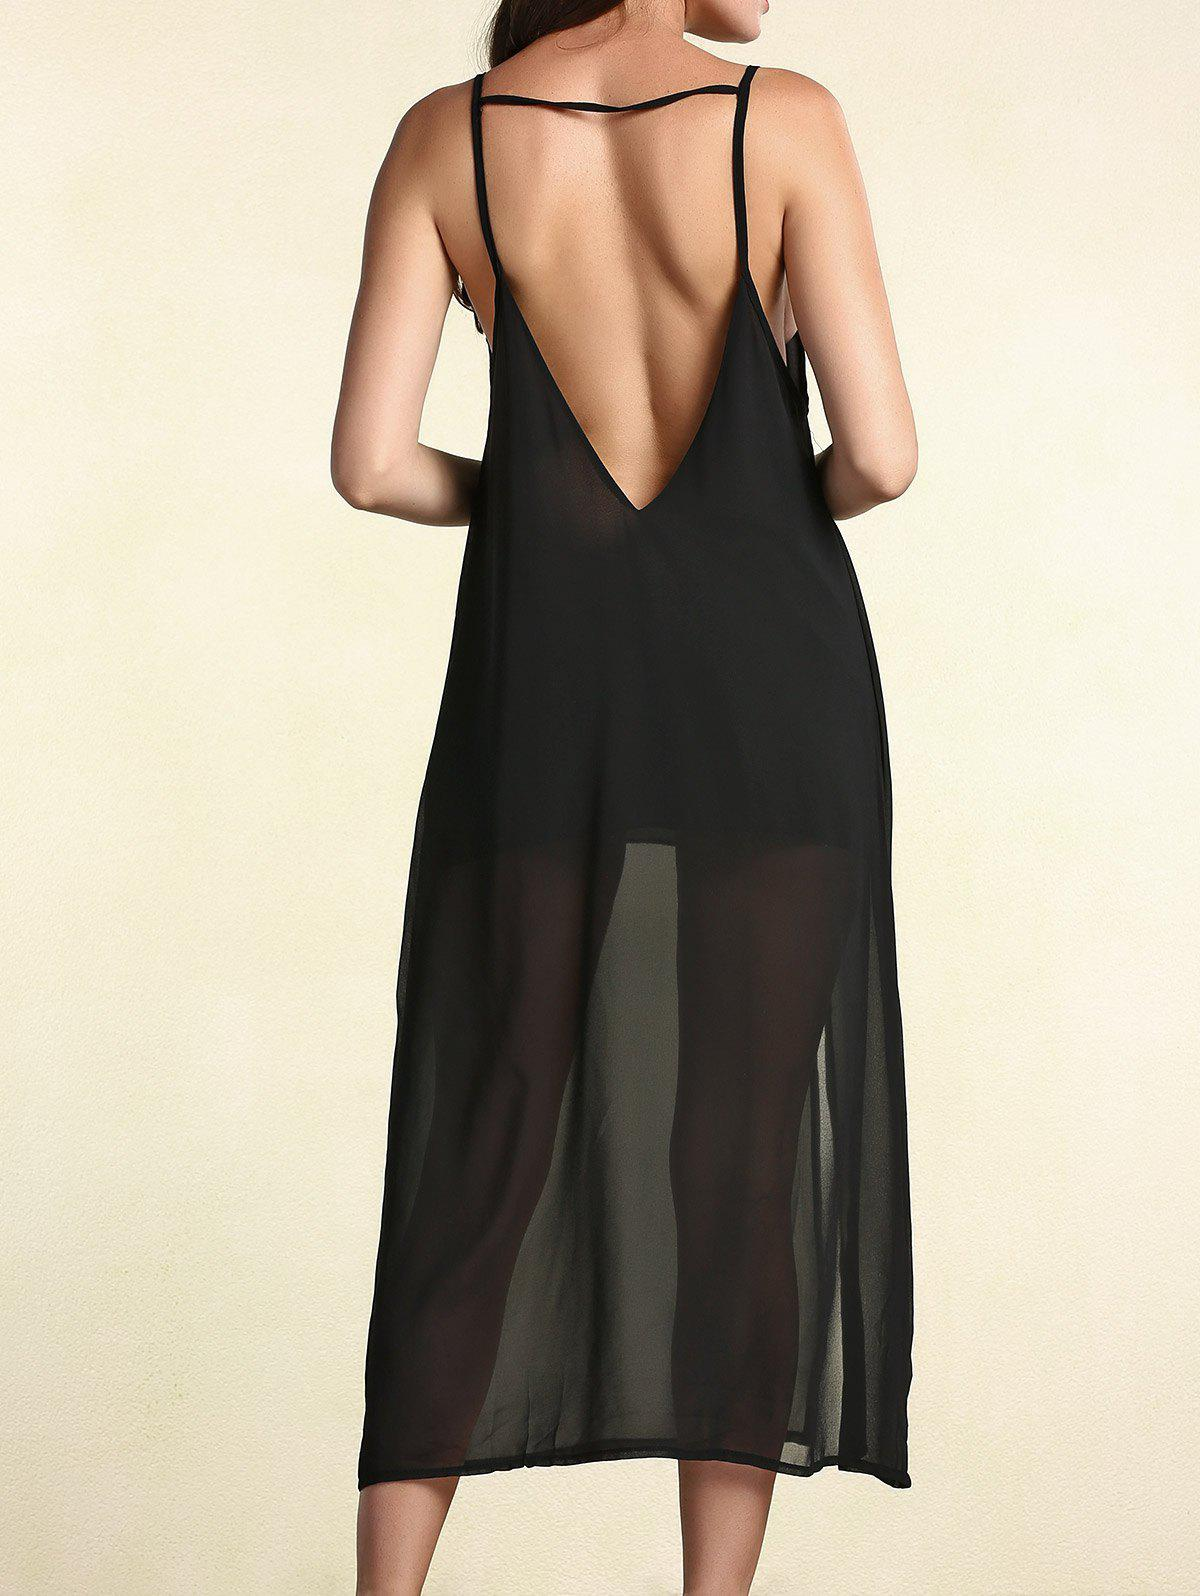 Chic Plunging Neck Backless Beach Dress For Women